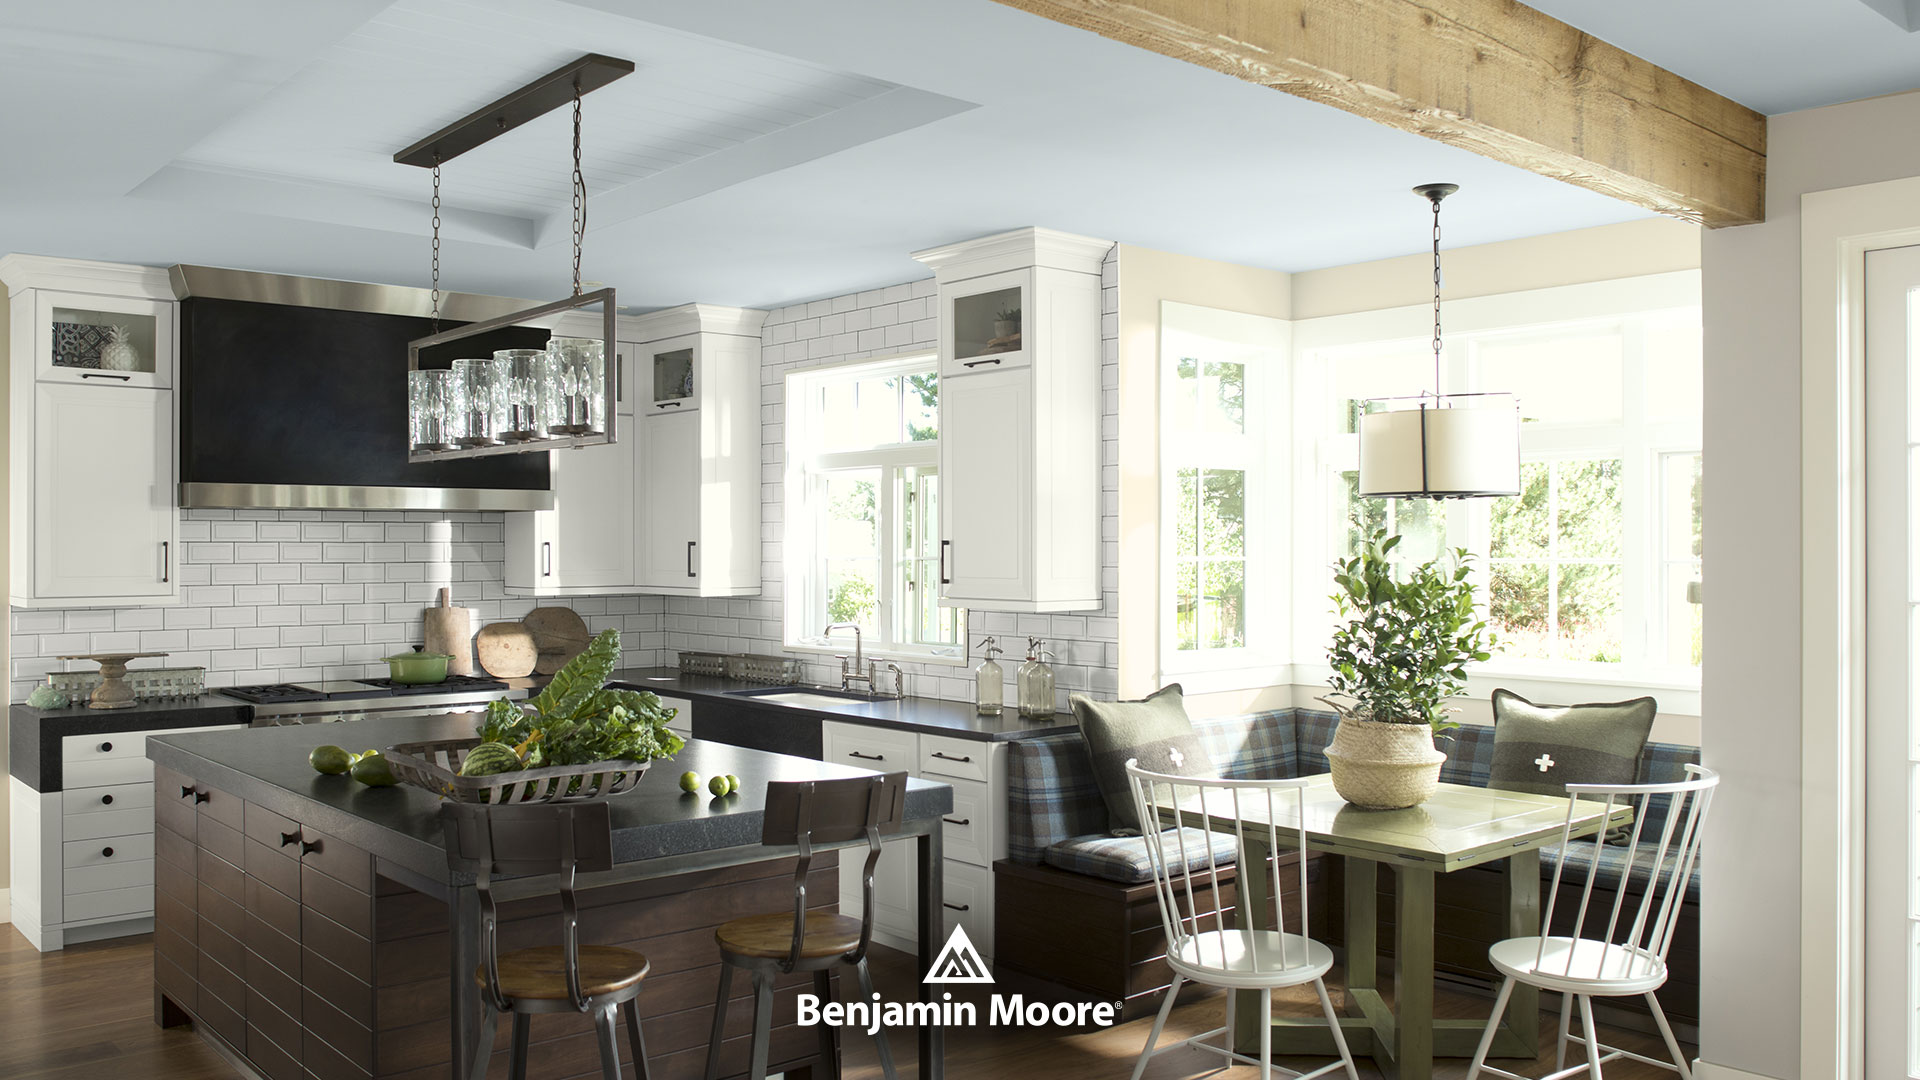 Kitchen in a Benjamin Moore Blue